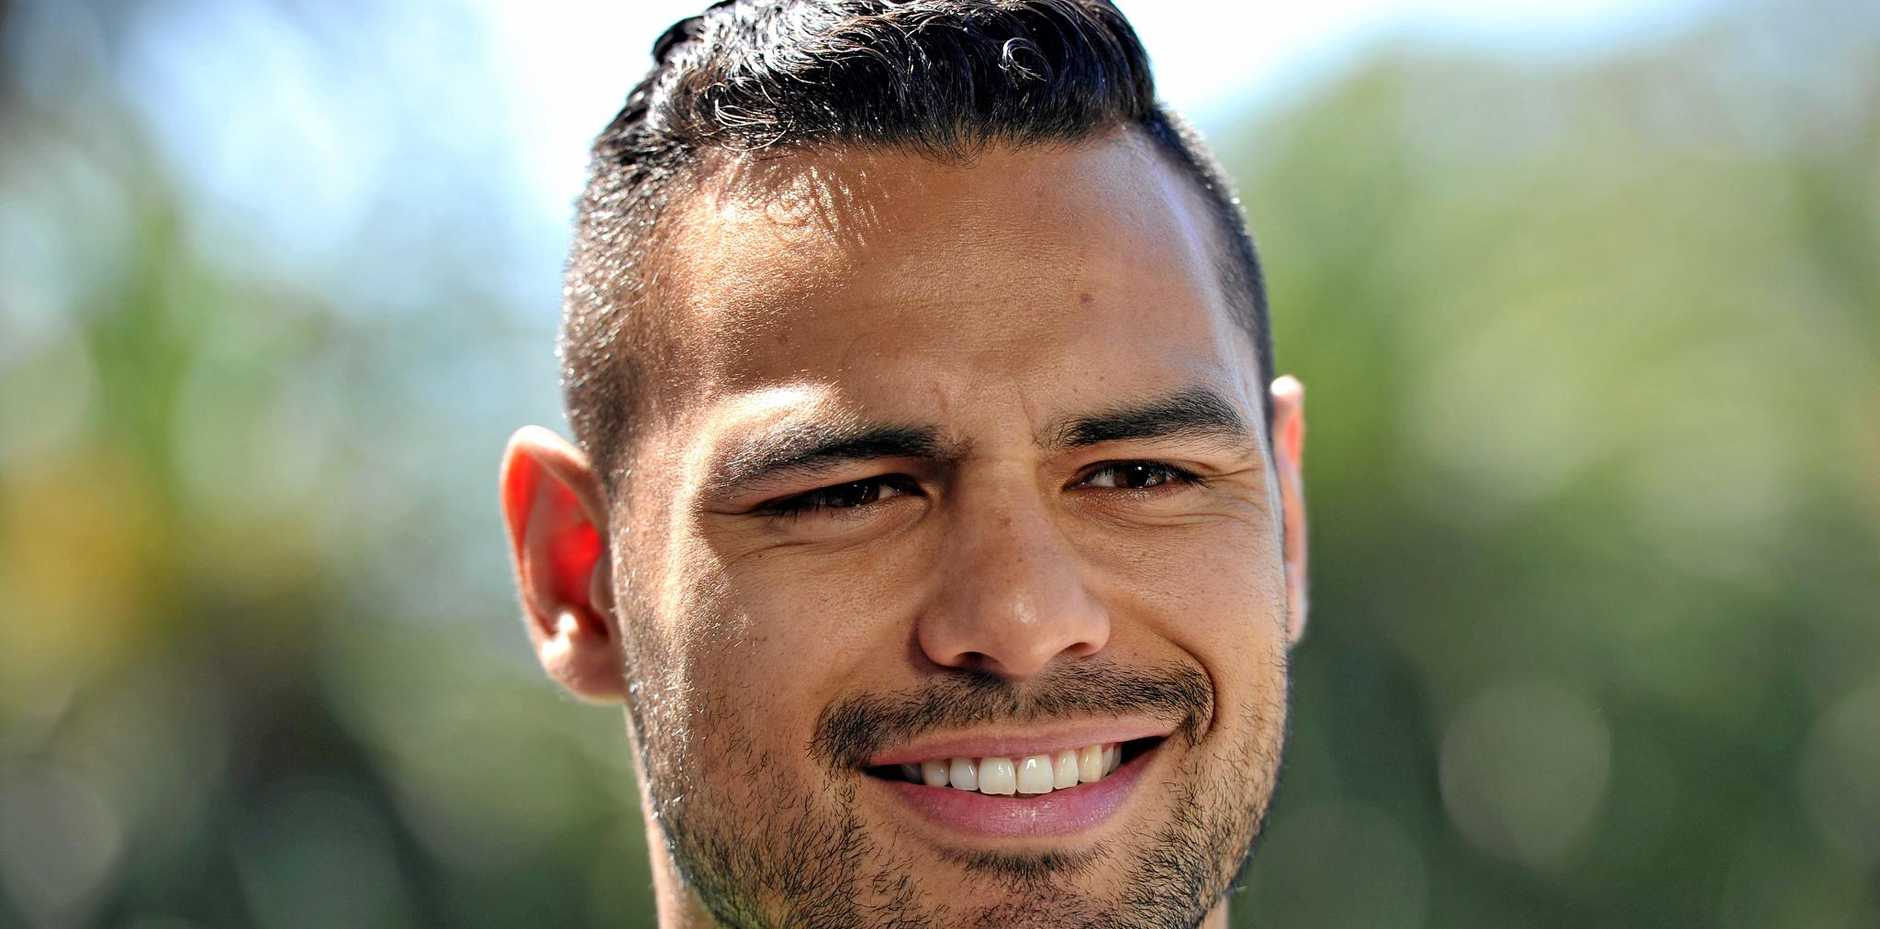 Former NRL player Ben Te'o has been named to play for the England rugby union side.